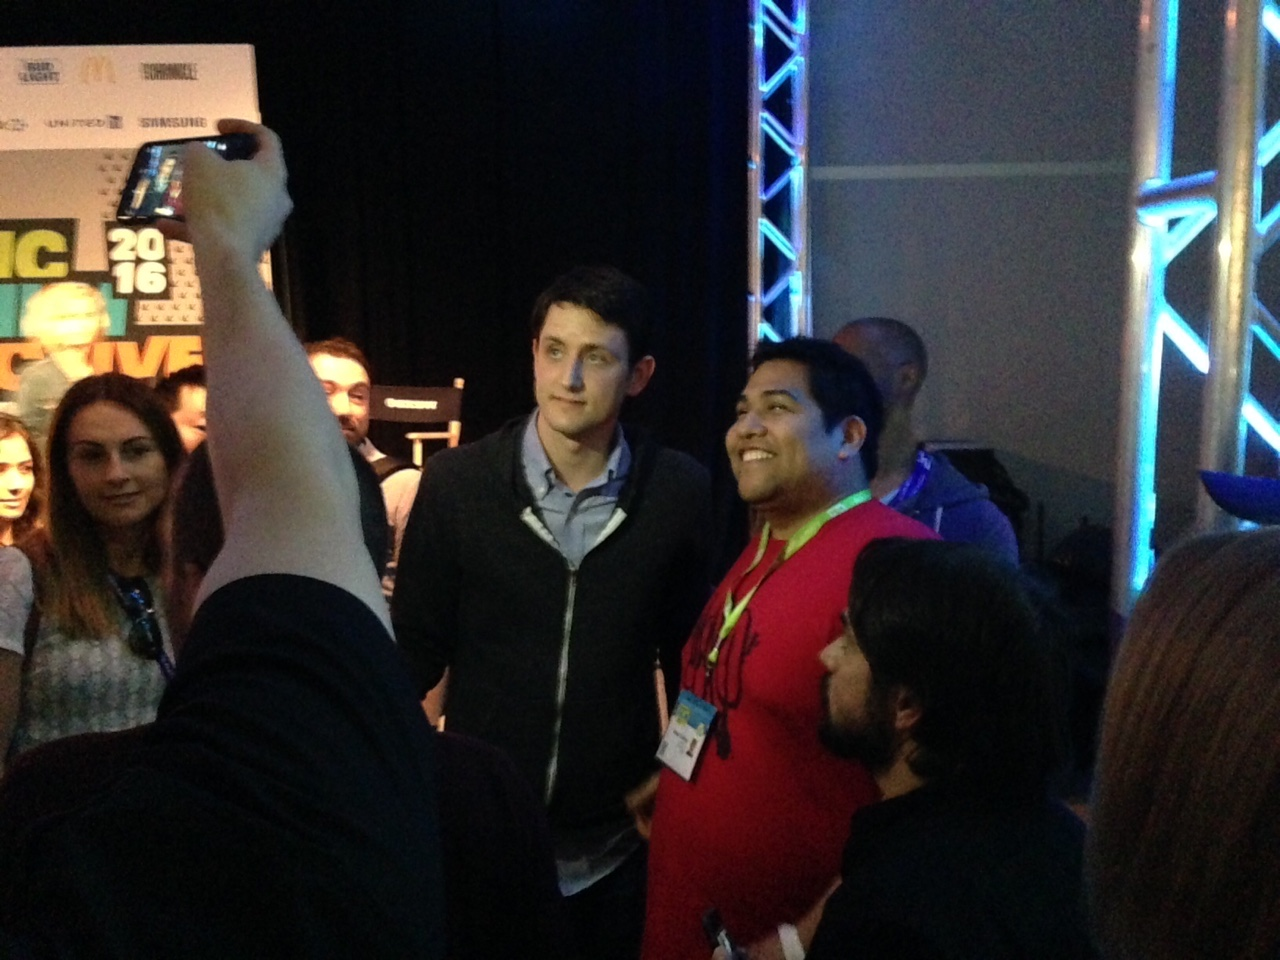 Zach Woods, who plays Jared on HBO's <em>Silicon Valley</em>, takes a photowith a fan at SXSW.